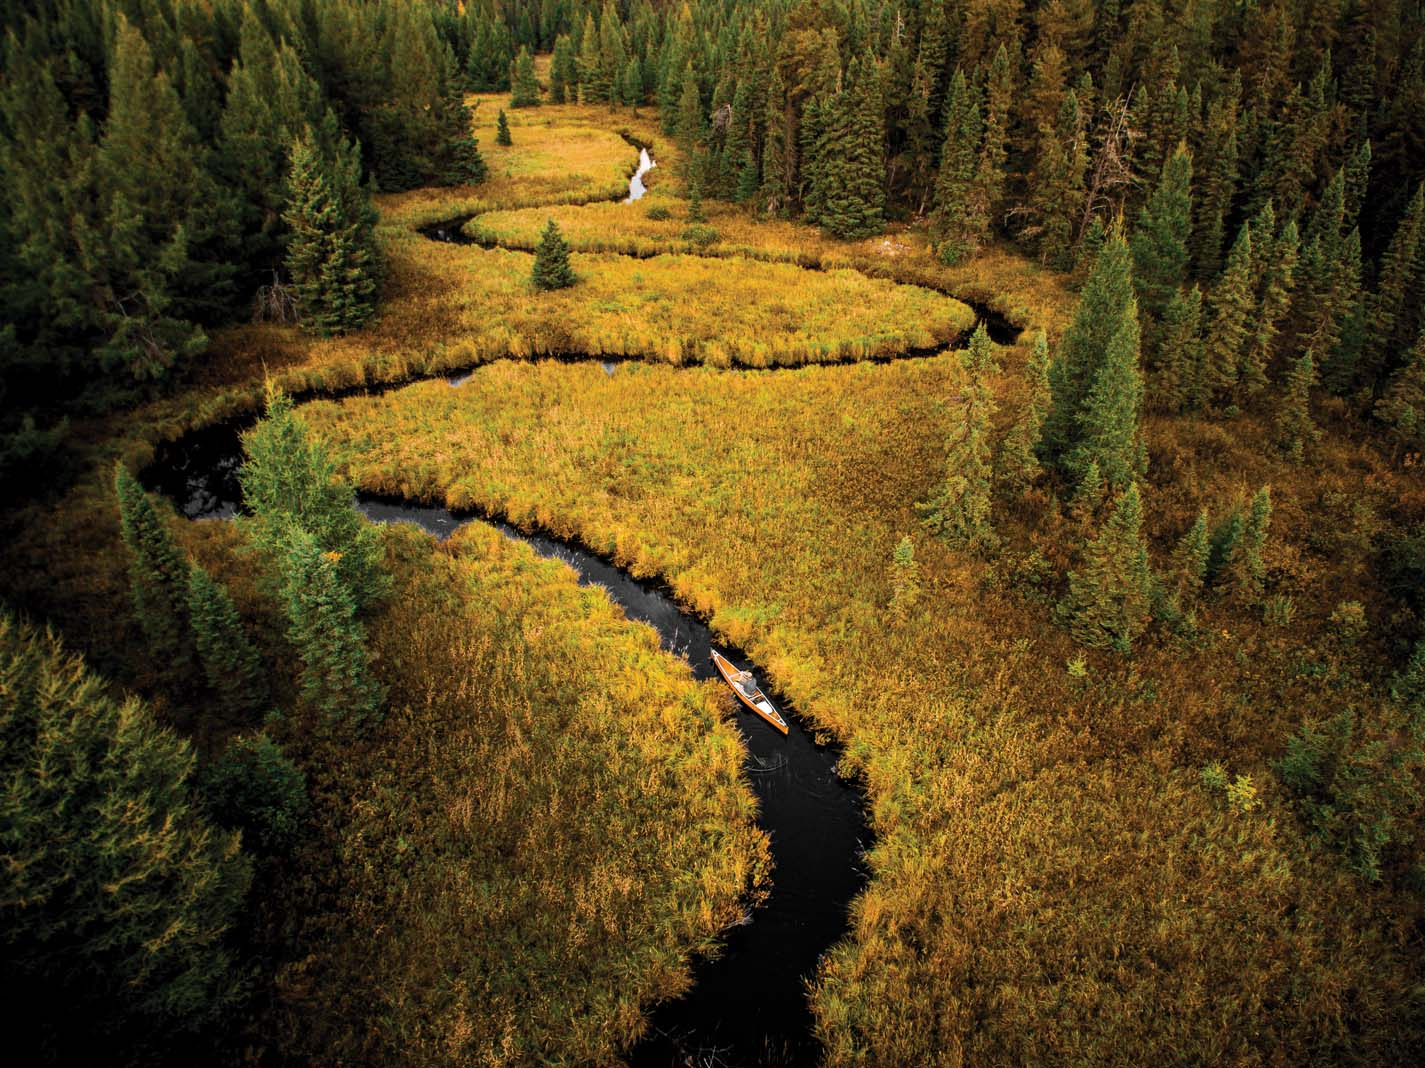 Snake River, near Bald Eagle Lake, is an unforgettable stretch of Boundary Waters Canoe Area Wilderness